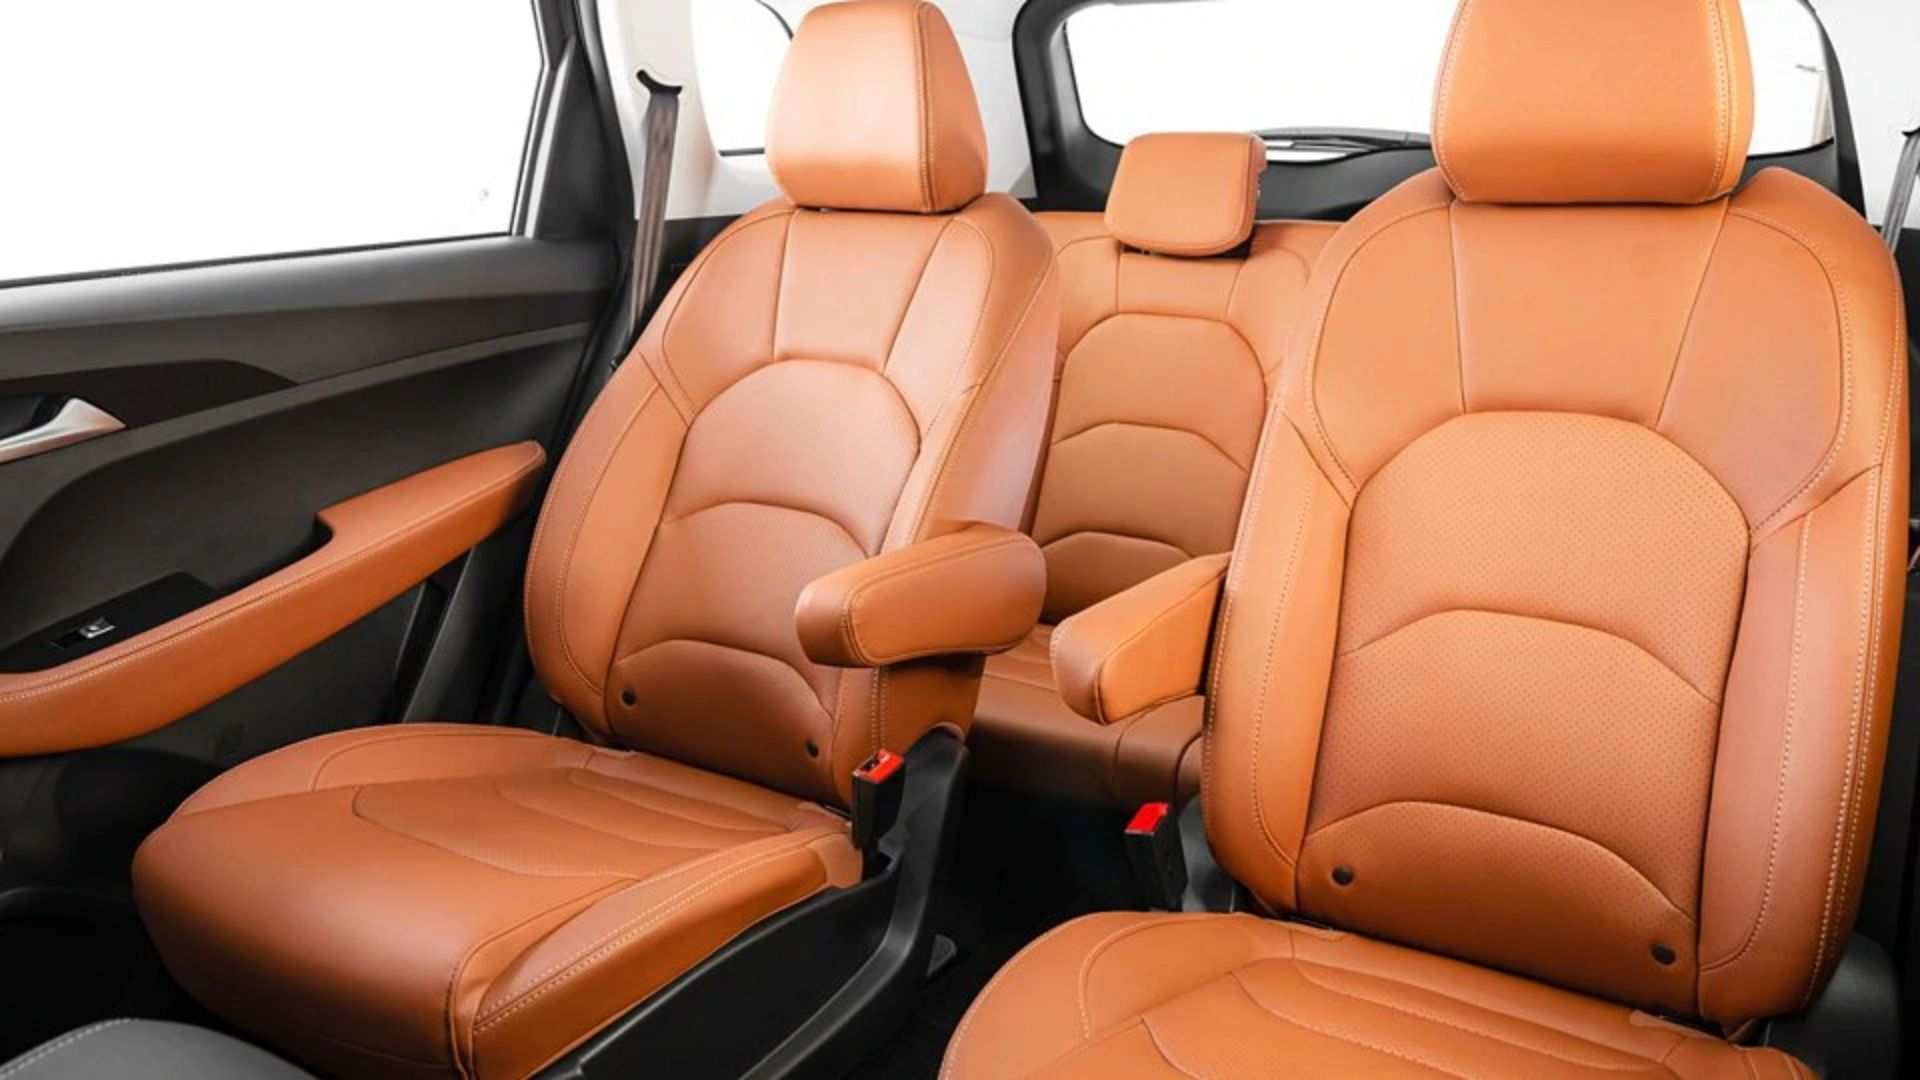 MG Hector Plus 7-Seater Interior Comforts